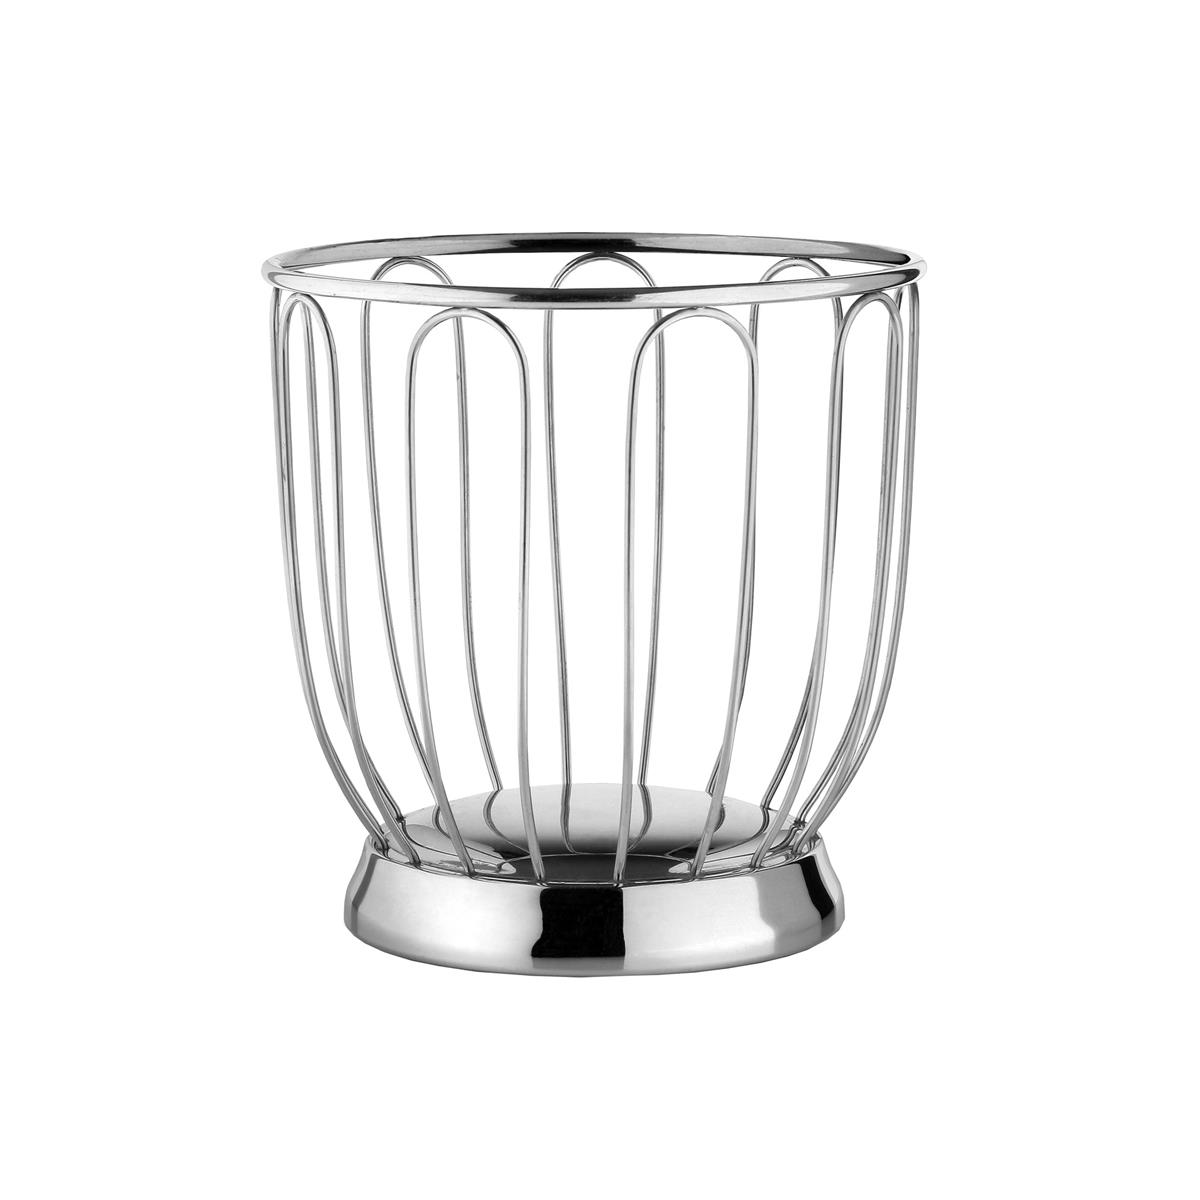 Alessi-Citrus holder in 18/10 stainless steel mirror polished